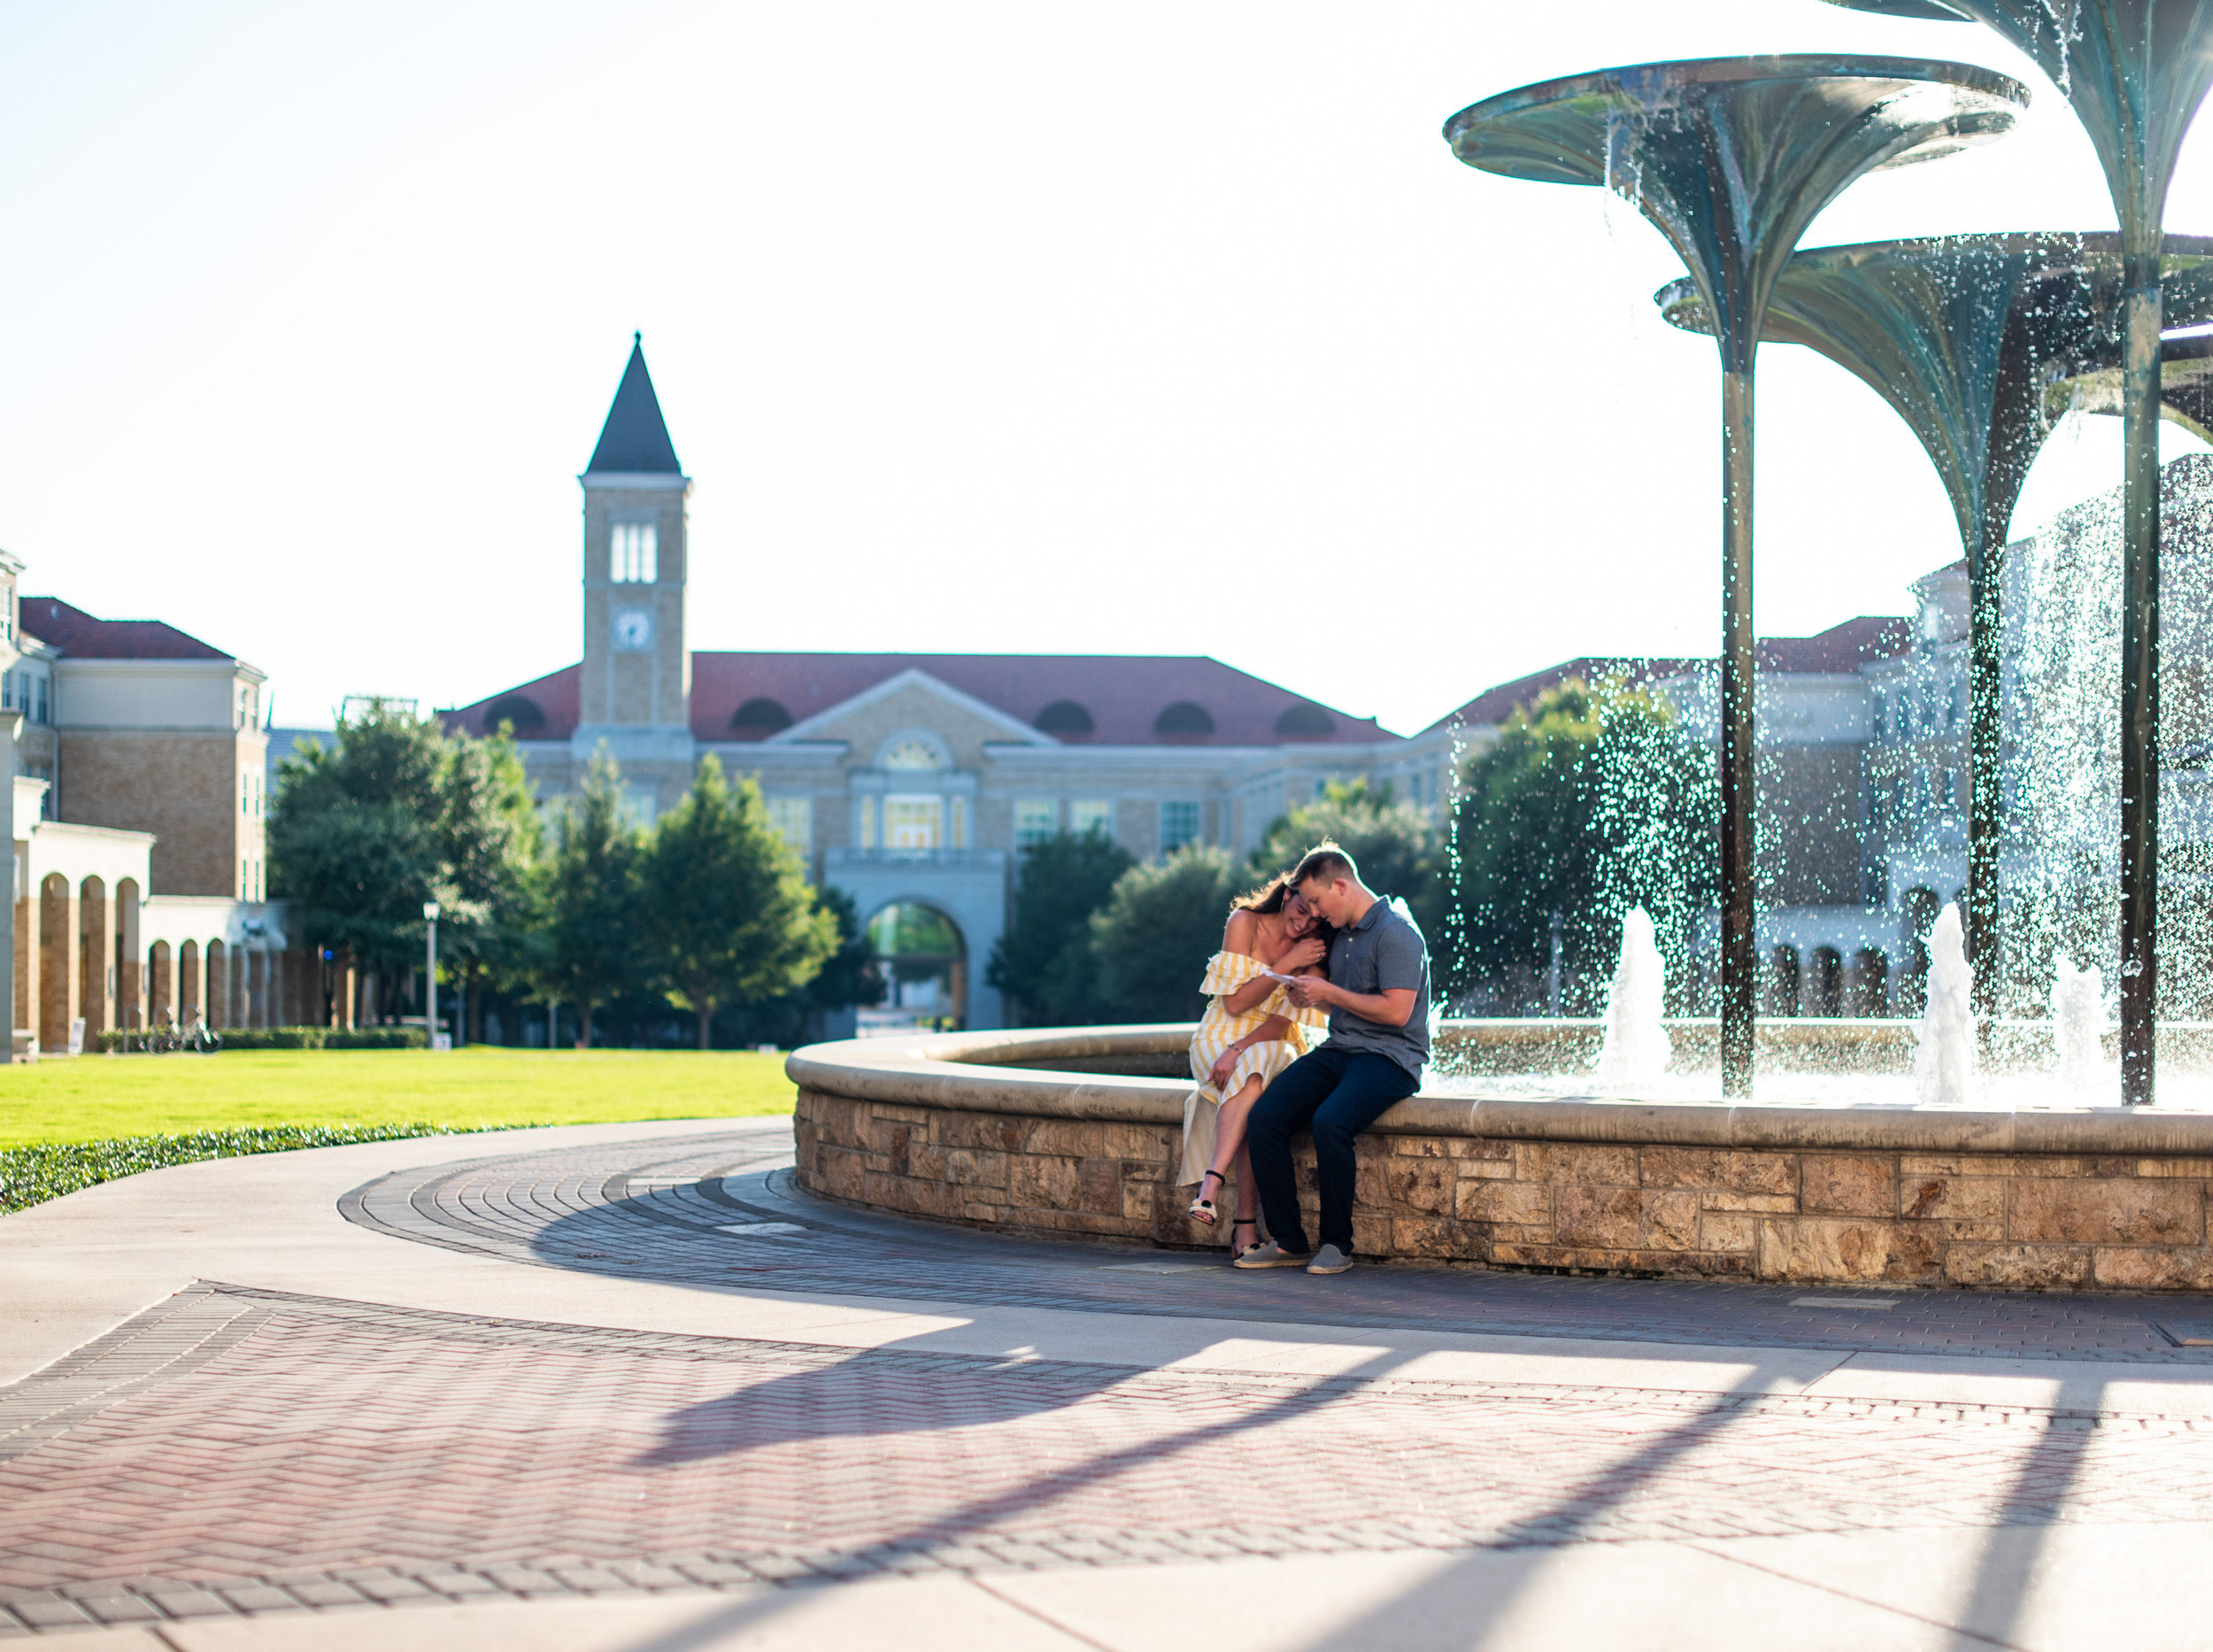 fort worth wedding proposal story at TCU